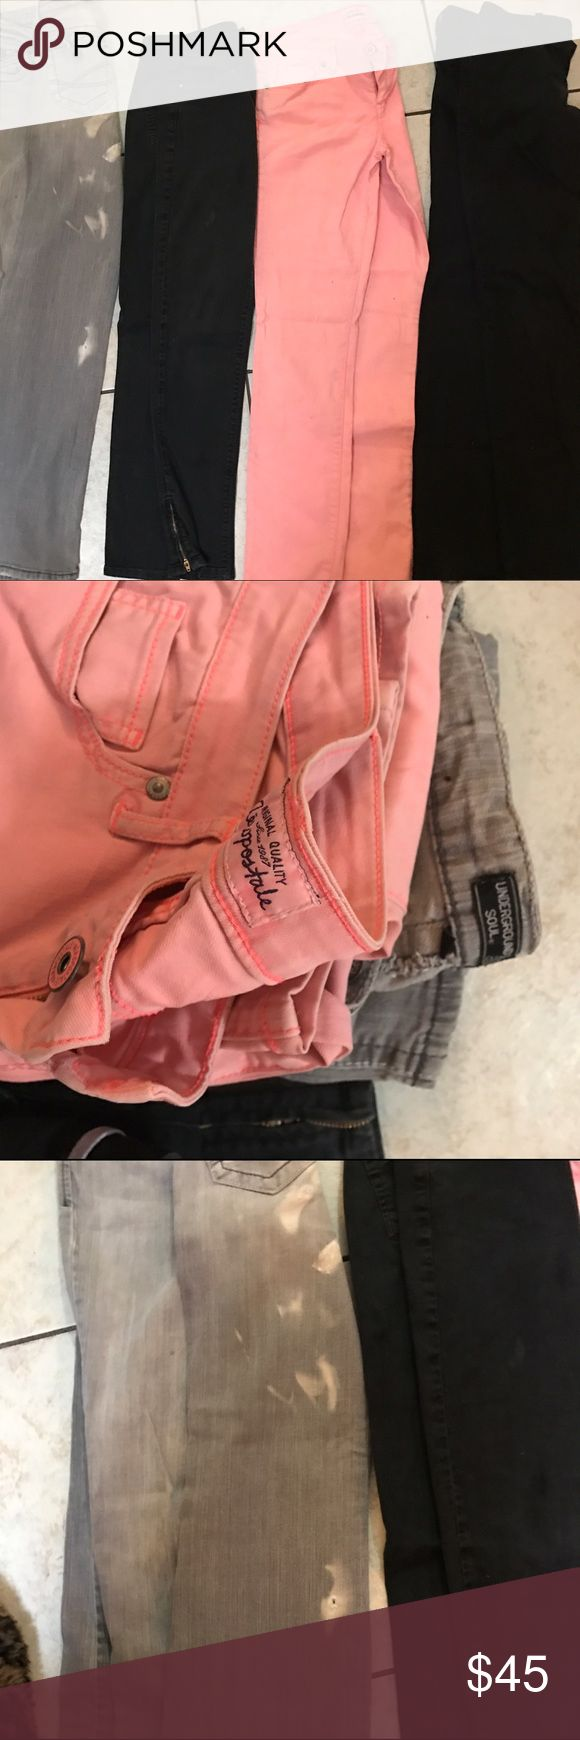 Bundle of various jeans Armani exchange, TSOTA are the brands of the black pants. The gray have a few bleach spots on them but are urban decay and could be made into a bleached para pants or reduced- I literally wear them once before my ex-husband got bleach on them and never die them as I intended so they're definitely like new, The peach pants or Aeropostale and yes I will separate them out upon request.  Check out my other bundle lots that are being added daily and take advantage of my…